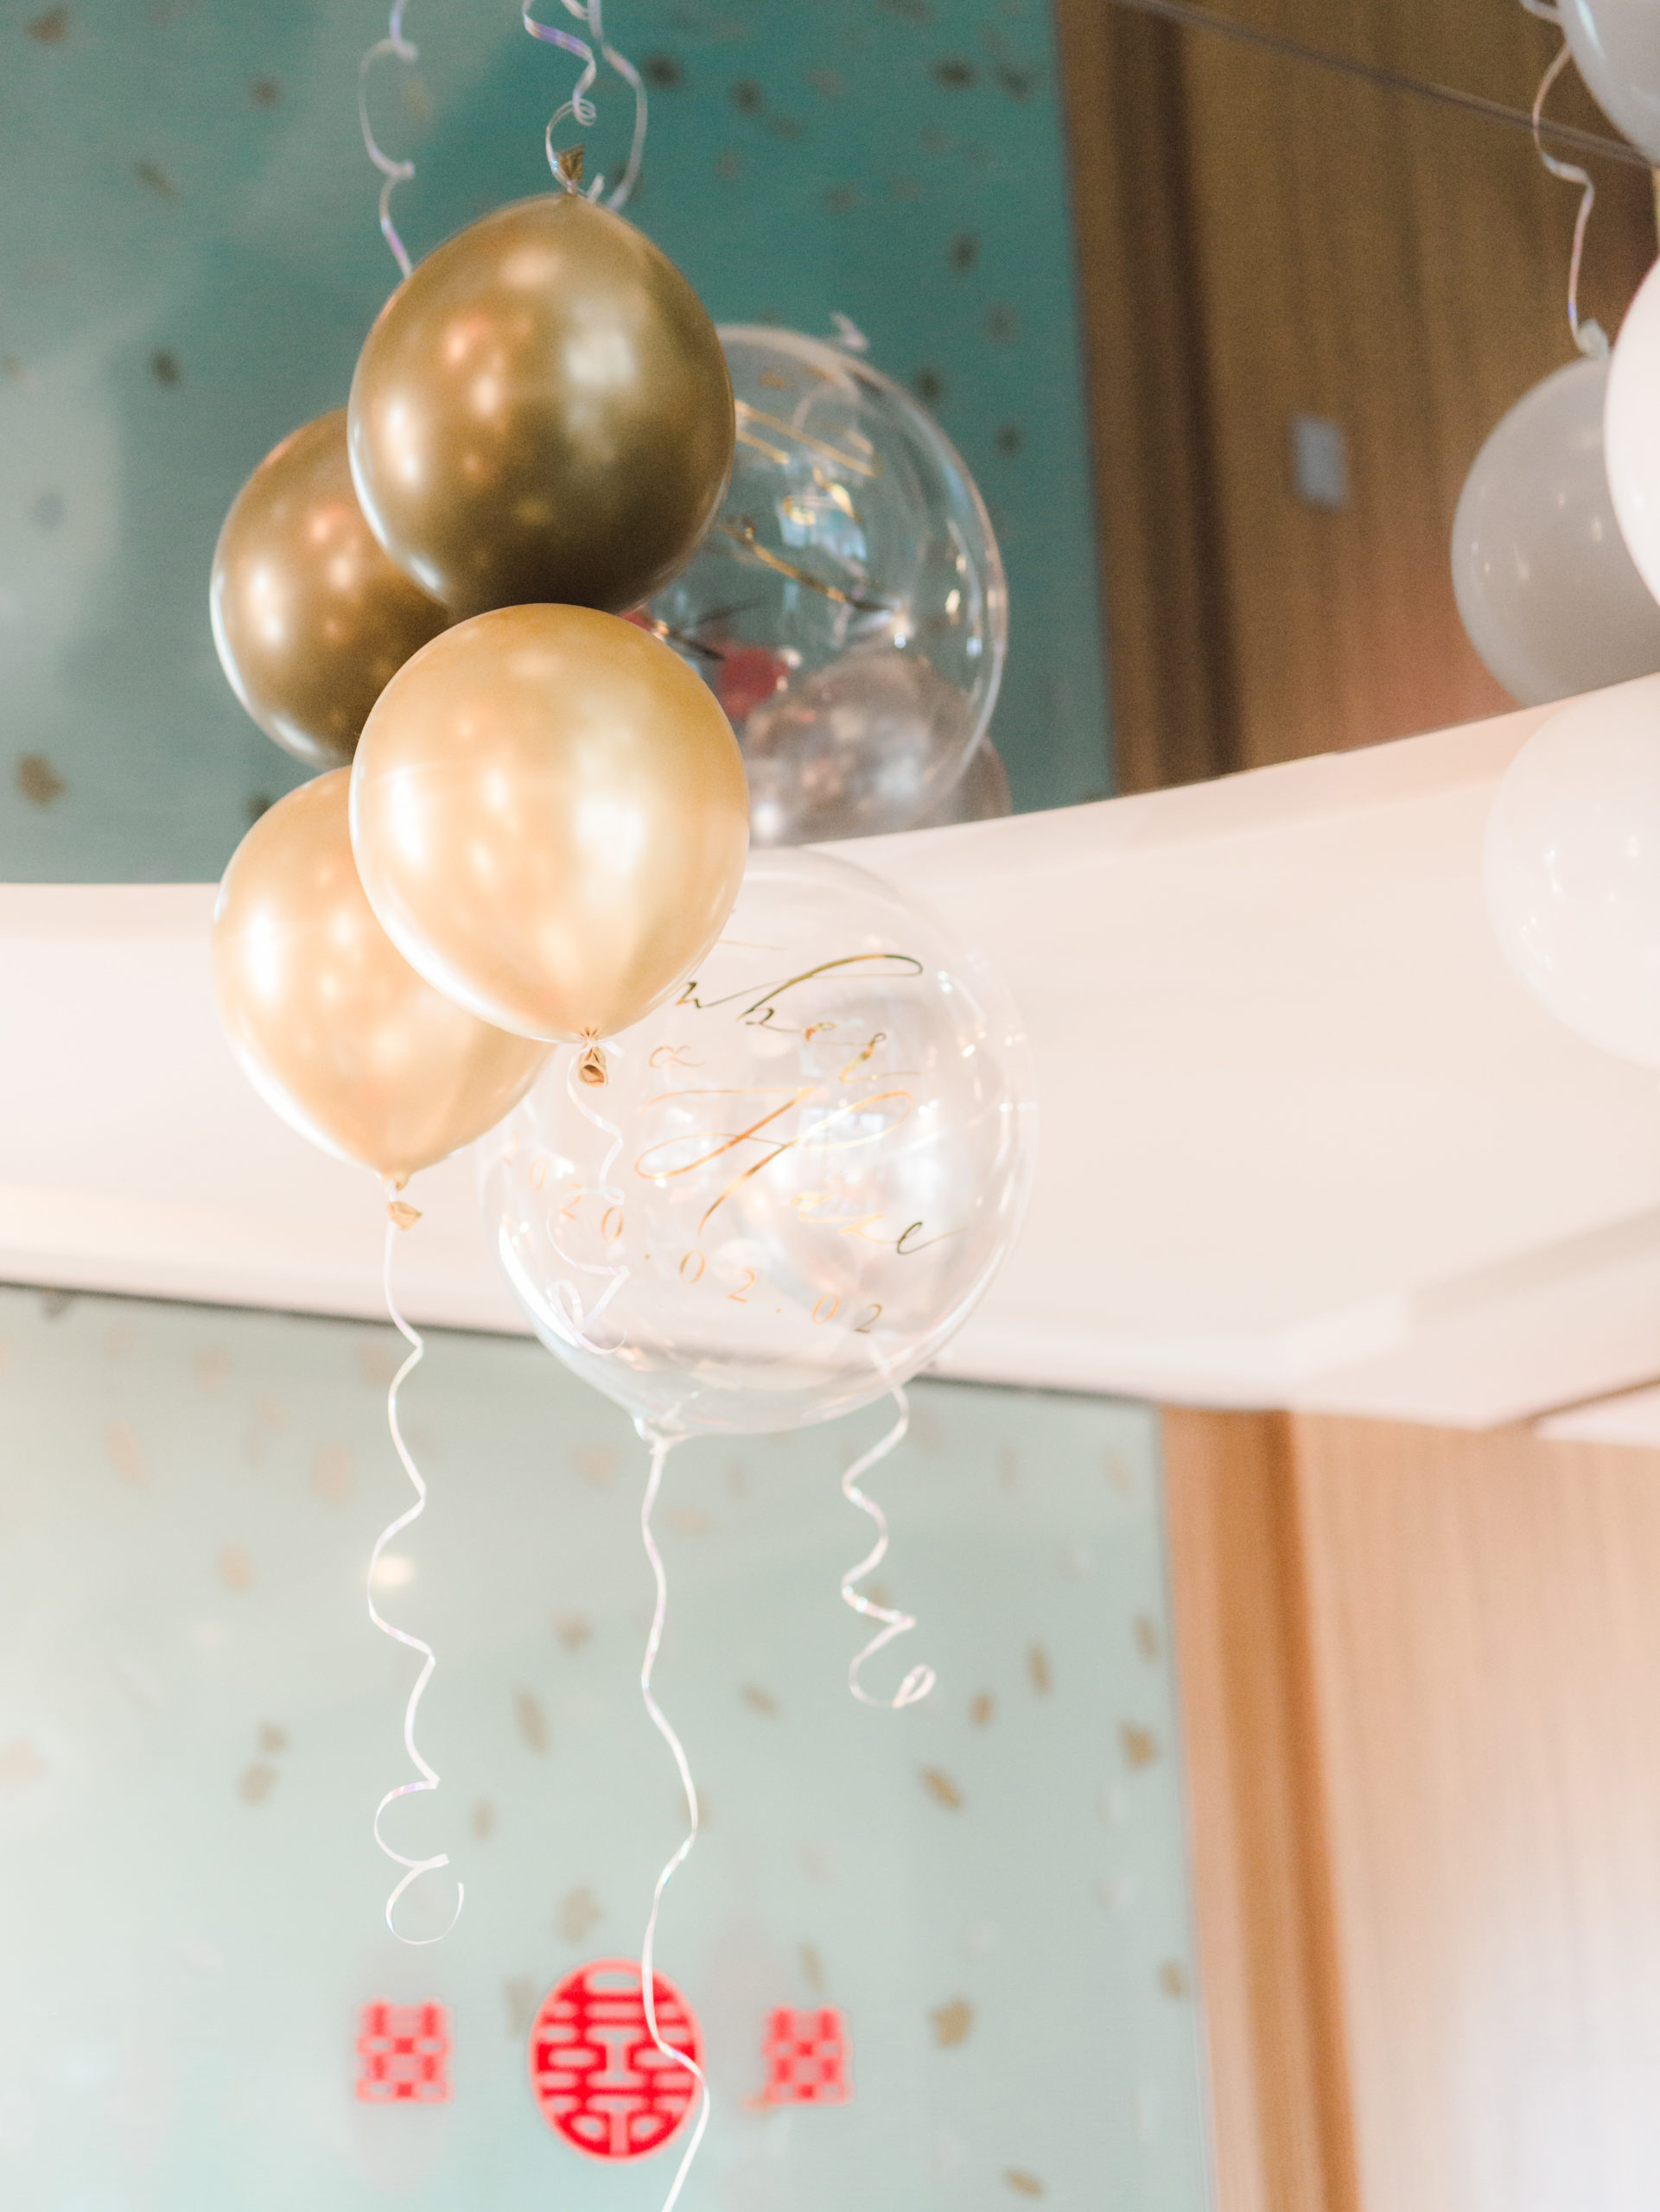 old-and-transparent-wedding-calligraphy-balloons